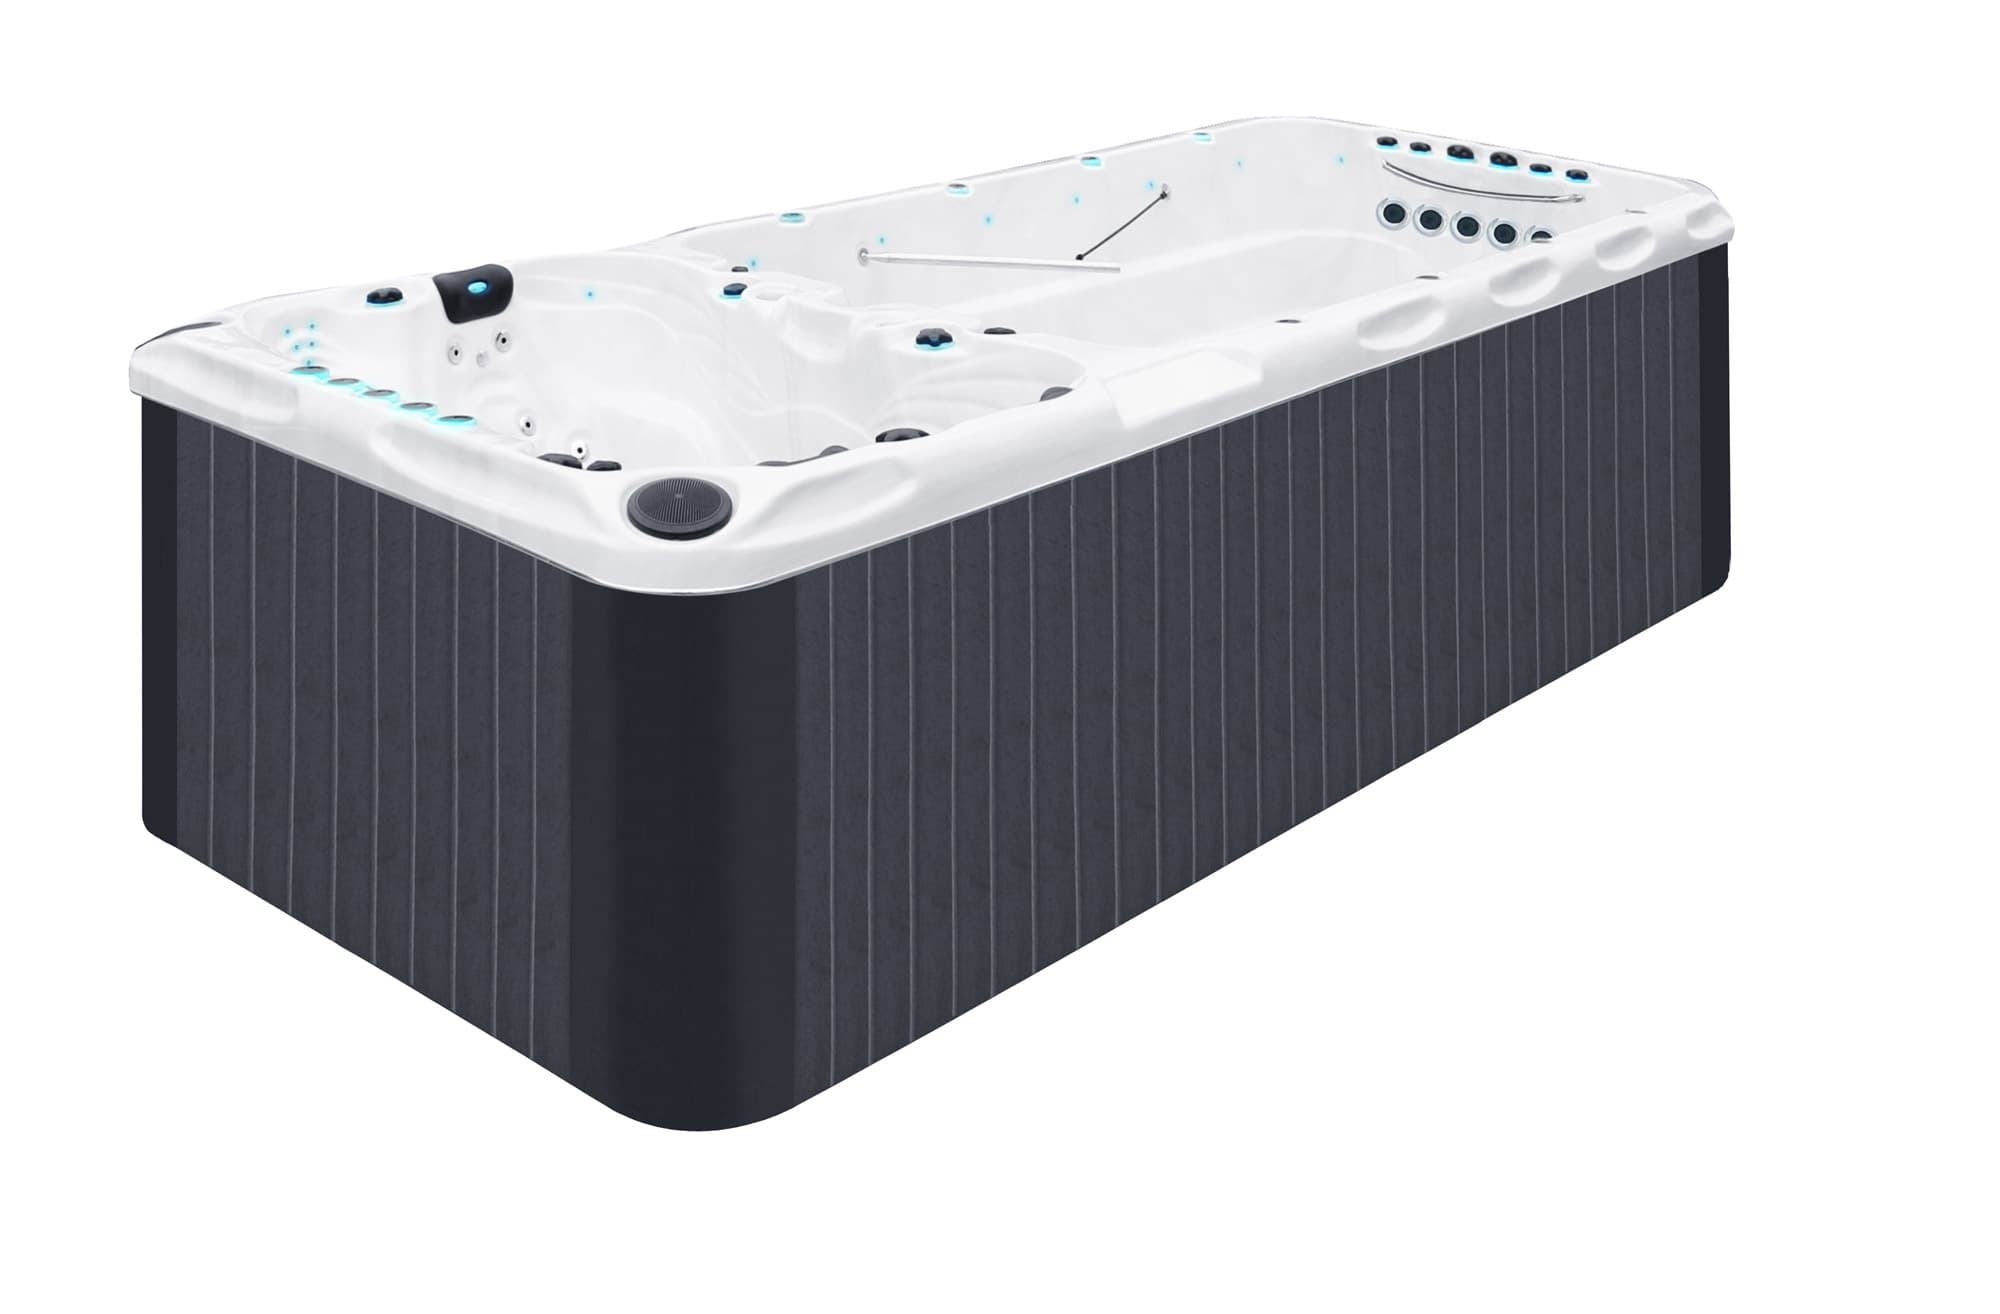 Whirlpool Outdoor Mit Gegenstromanlage Swim Spa Dallas 127cm 2019 Platin Version